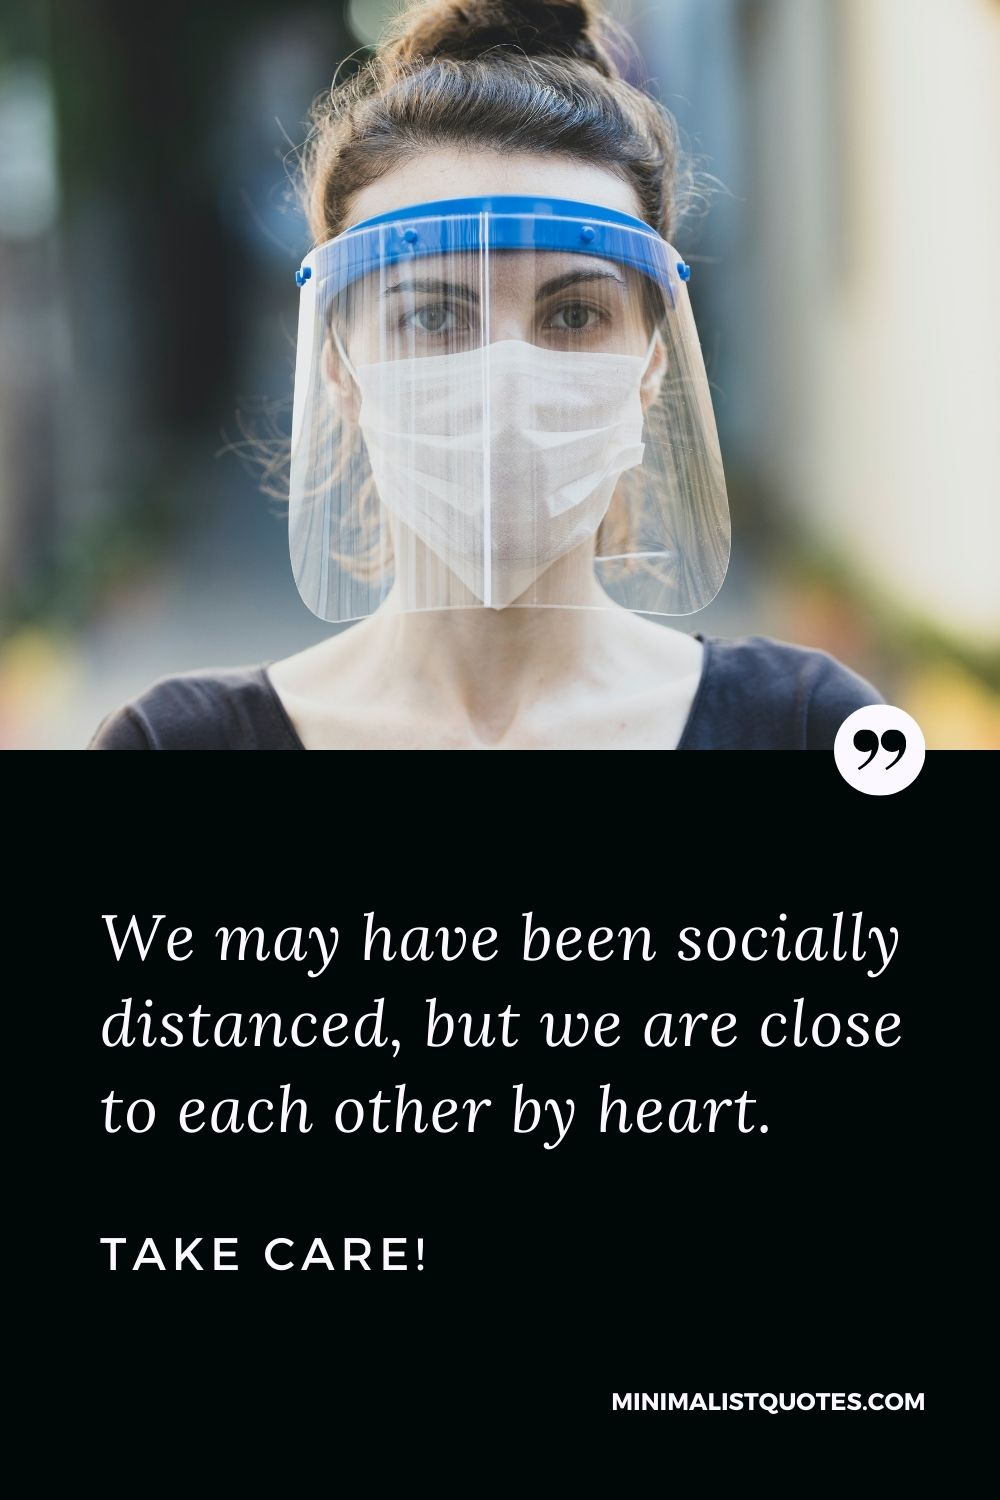 Quarantine Birthday Quote, Wish & Message With Image: We may have been socially distanced, but we are close to each other by heart. Take Care!